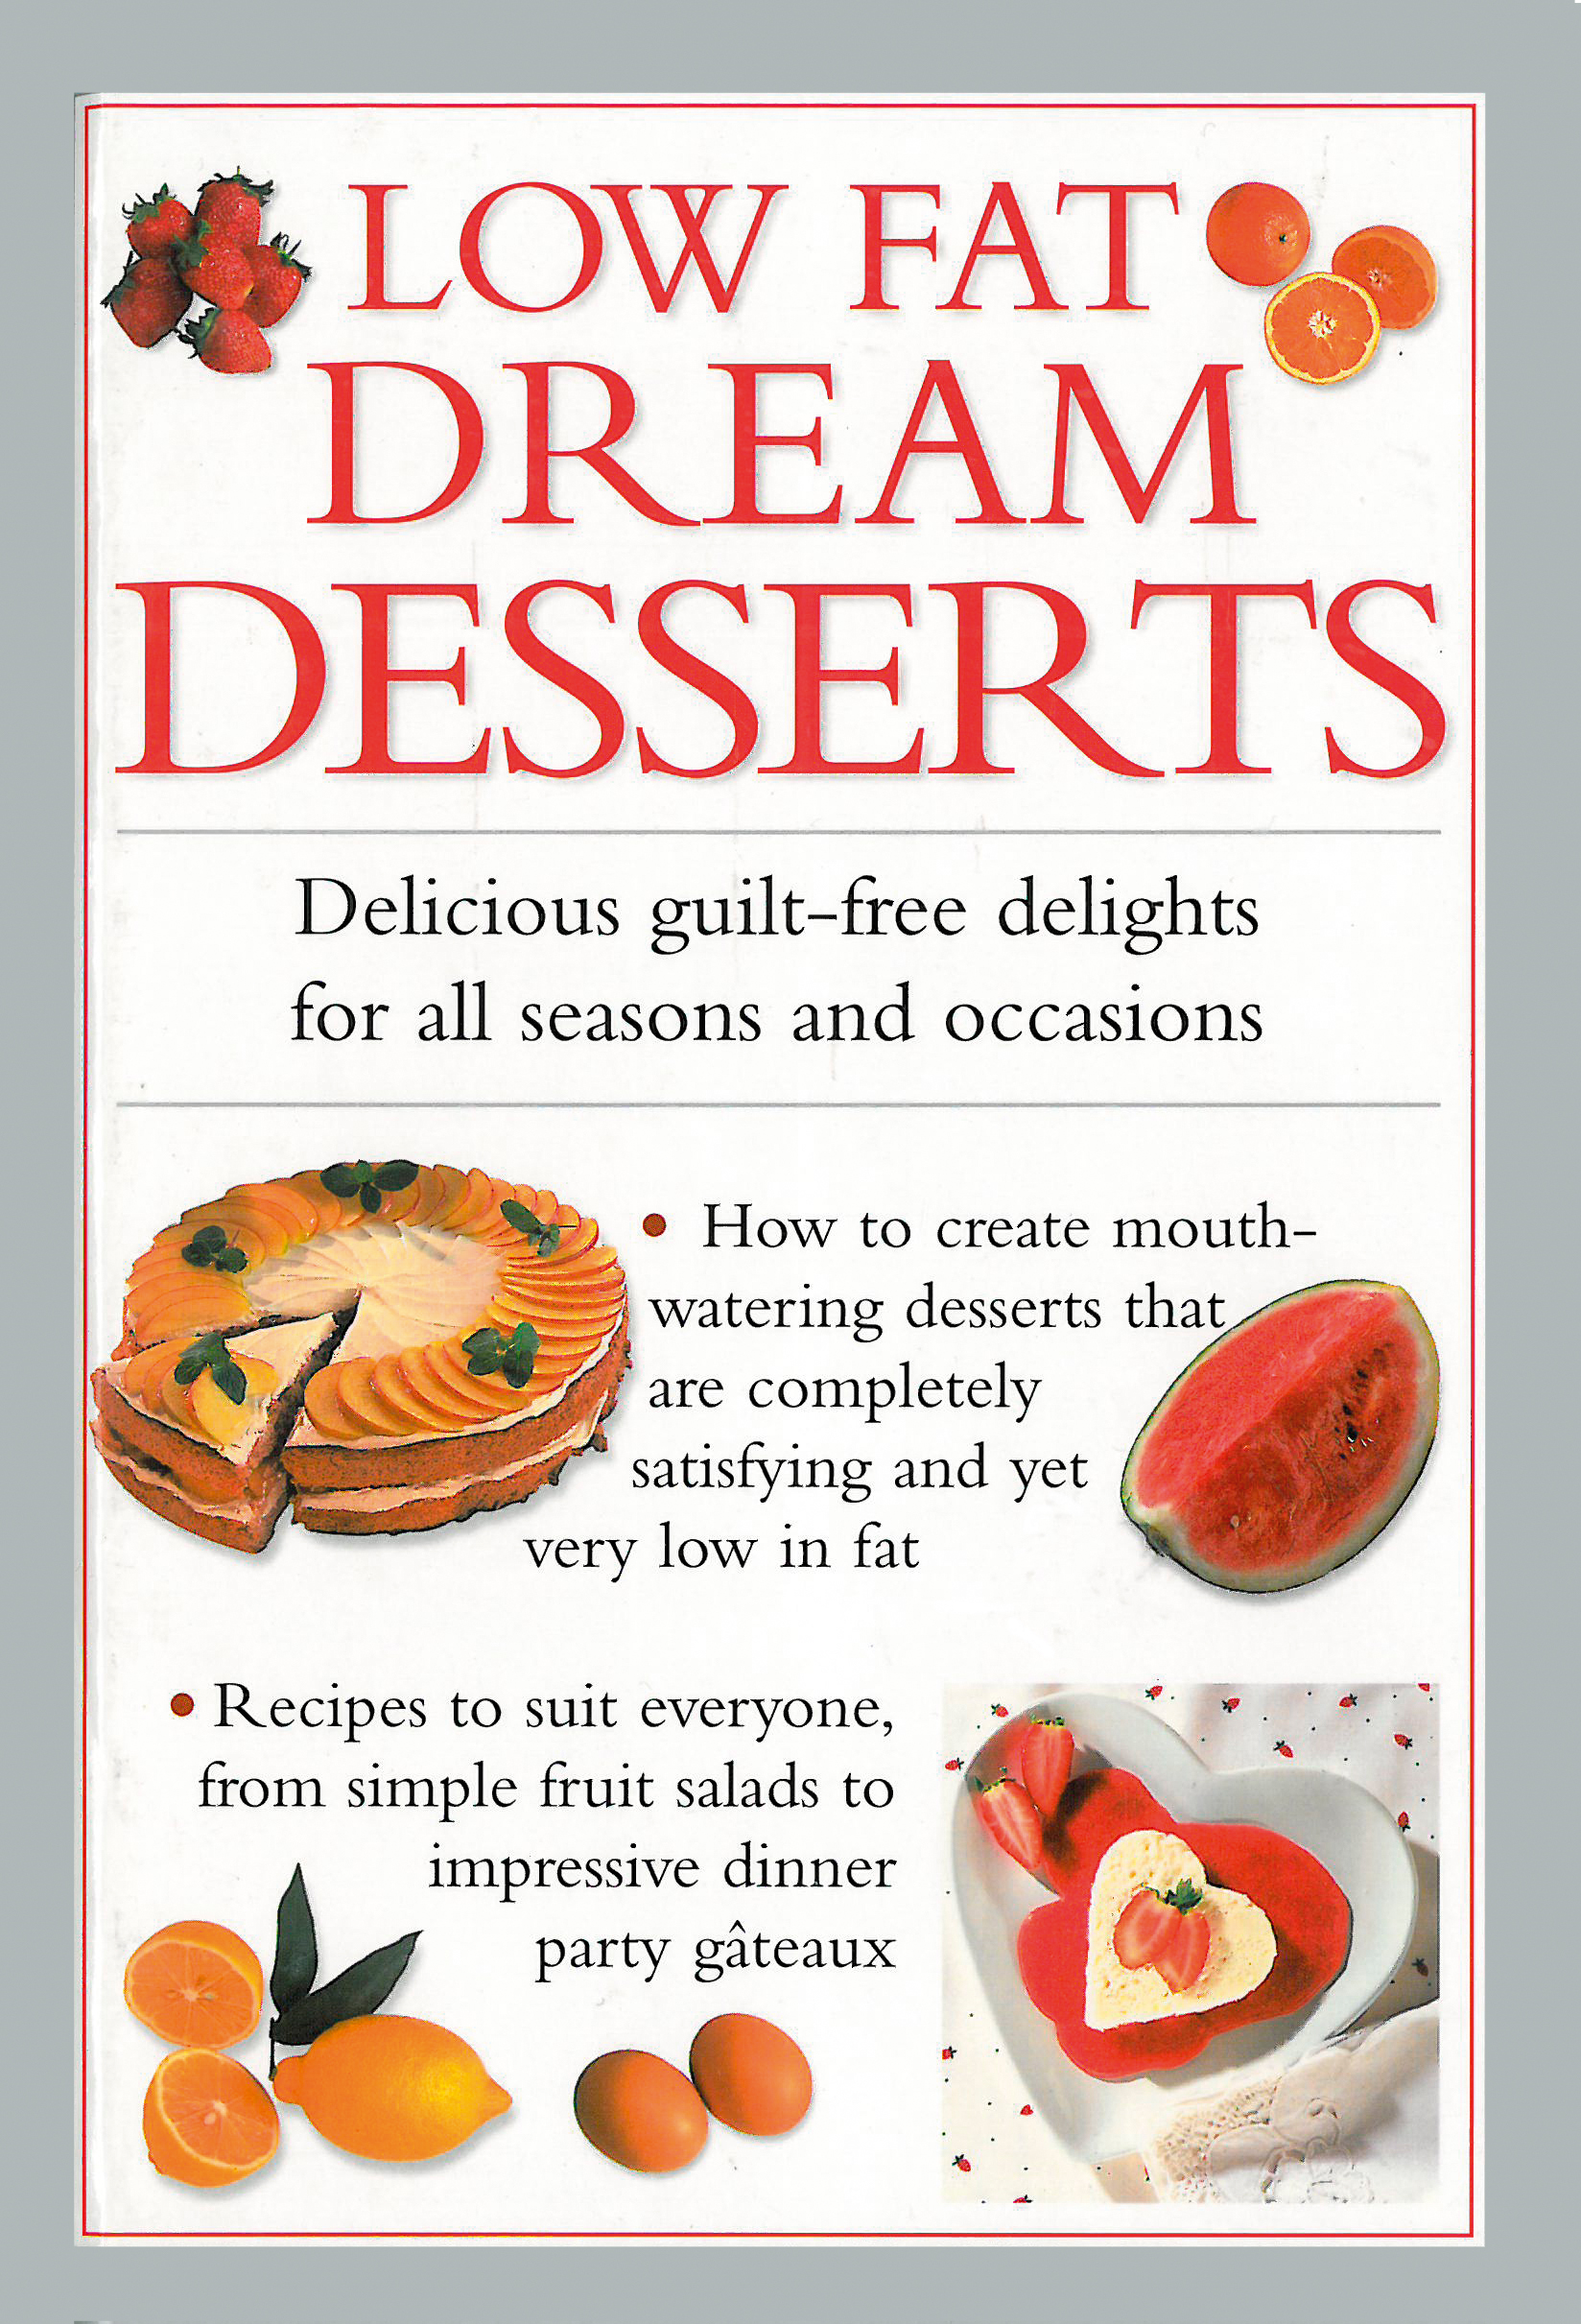 Low Fat Dream Desserts Delicious Guilt-Free Delights For All Seasons and Occasions